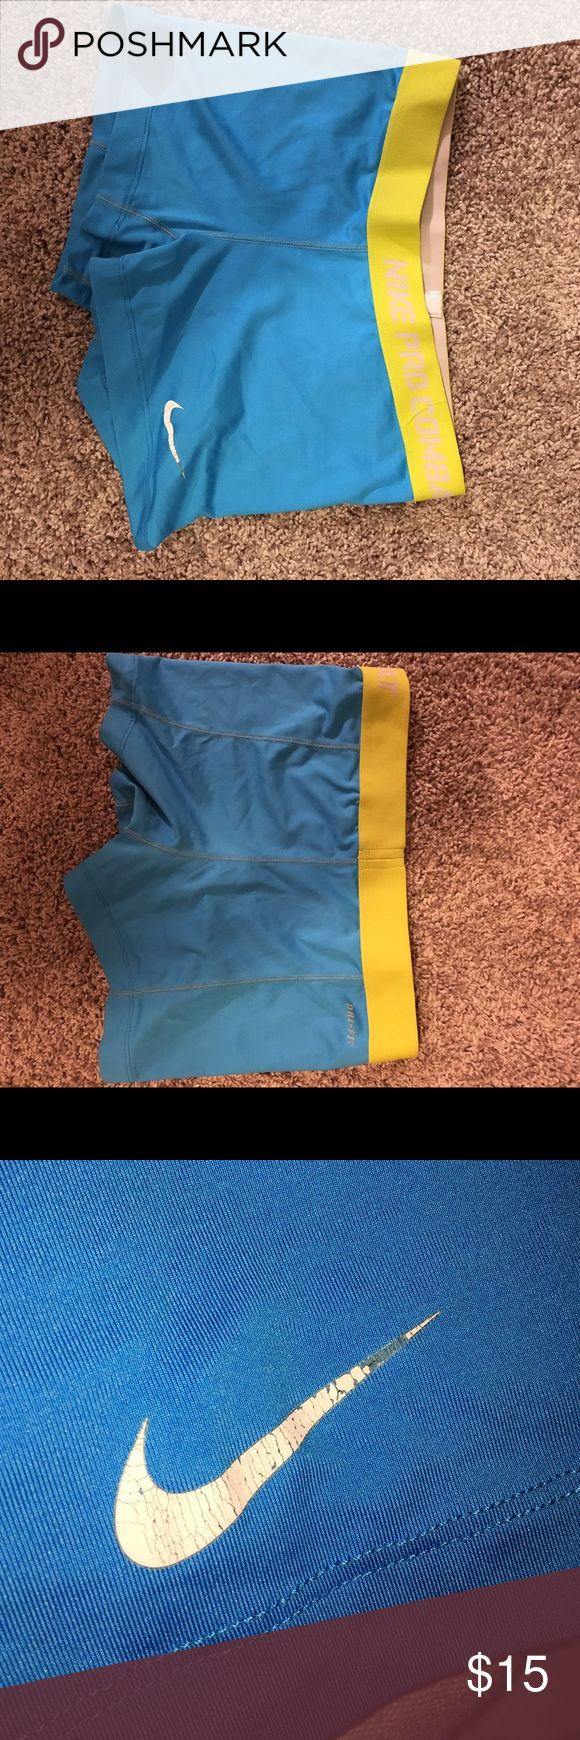 Blue Nike Pros everyone loves their fun-colored nike pros :) good condition, tag is worn & cracked nike pro sign on front but no deal breakers if you ask me Nike Shorts